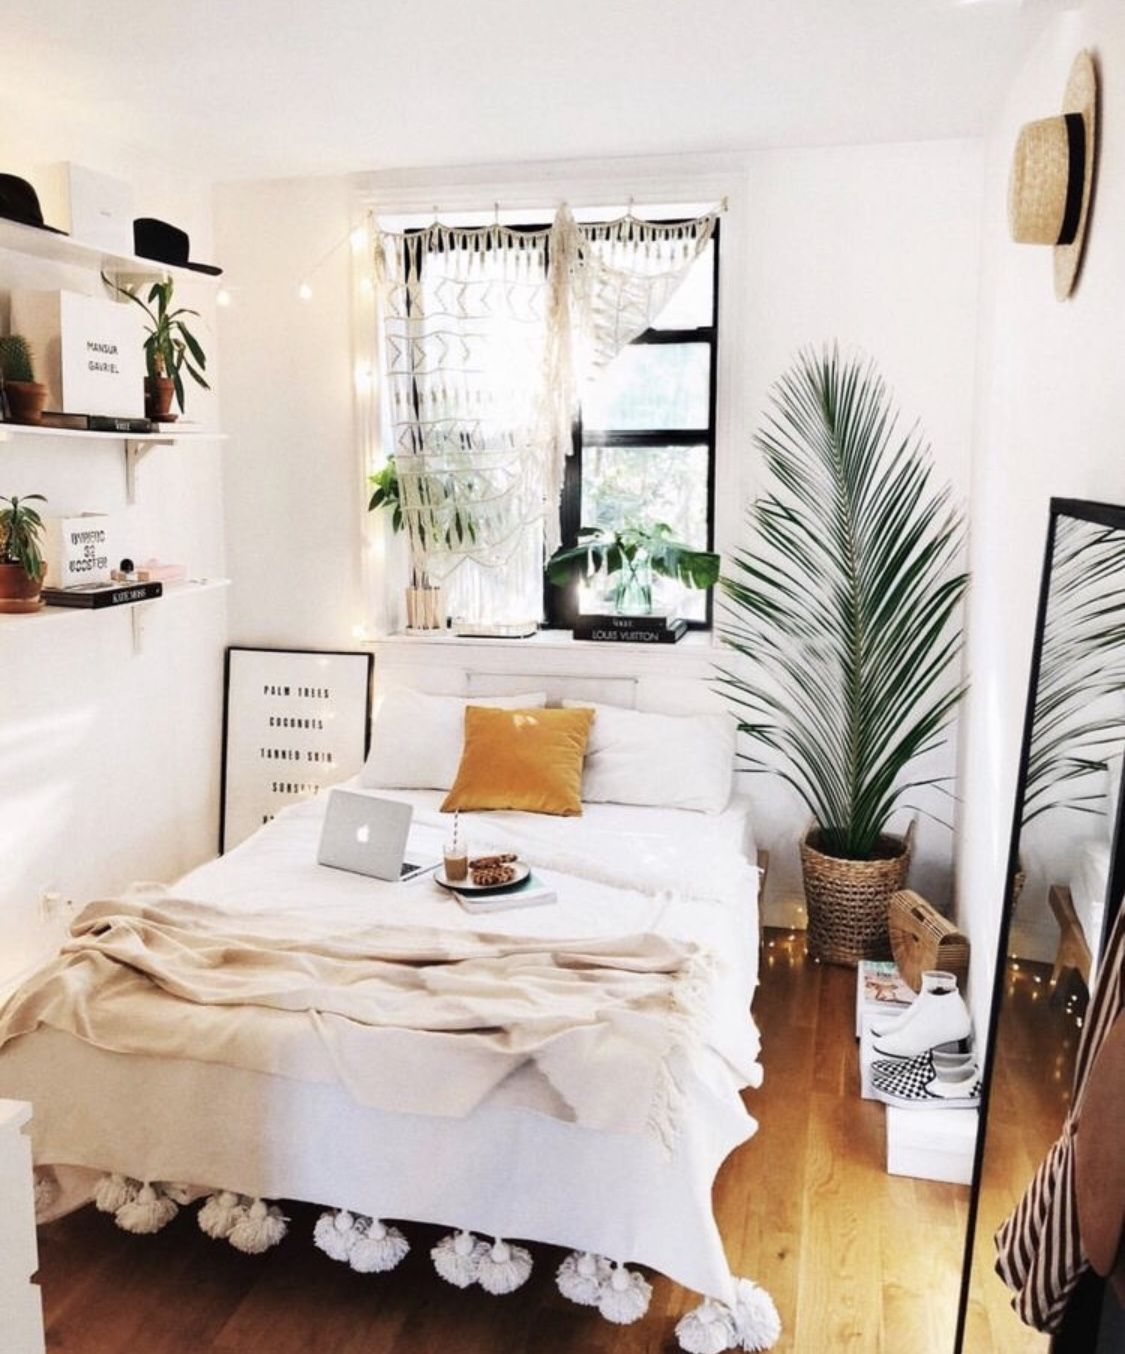 Pin By Josie Jabs On Room Room Inspiration Bedroom Design Bedroom Inspirations